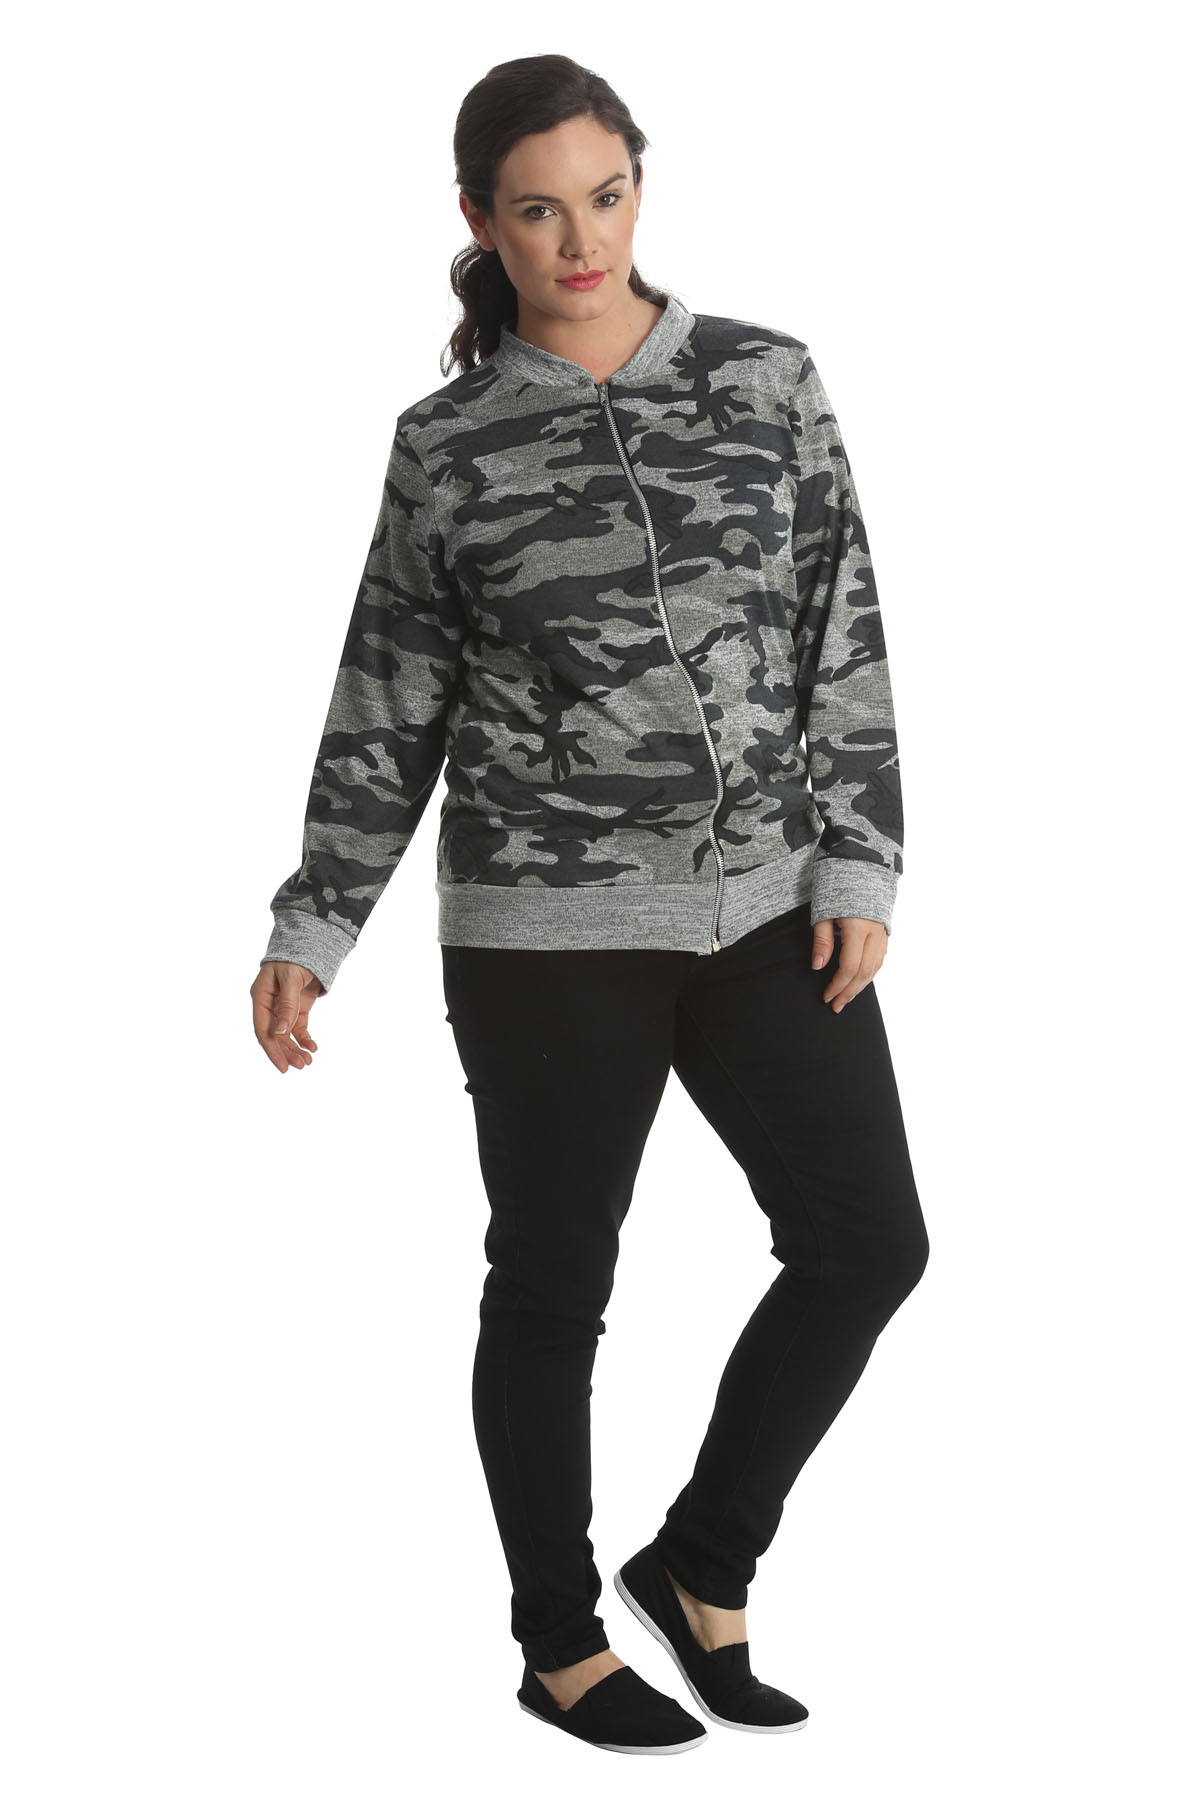 New Ladies Jacket Womens Bomber Jacket Army Camouflage Print Plus Size Nouvelle